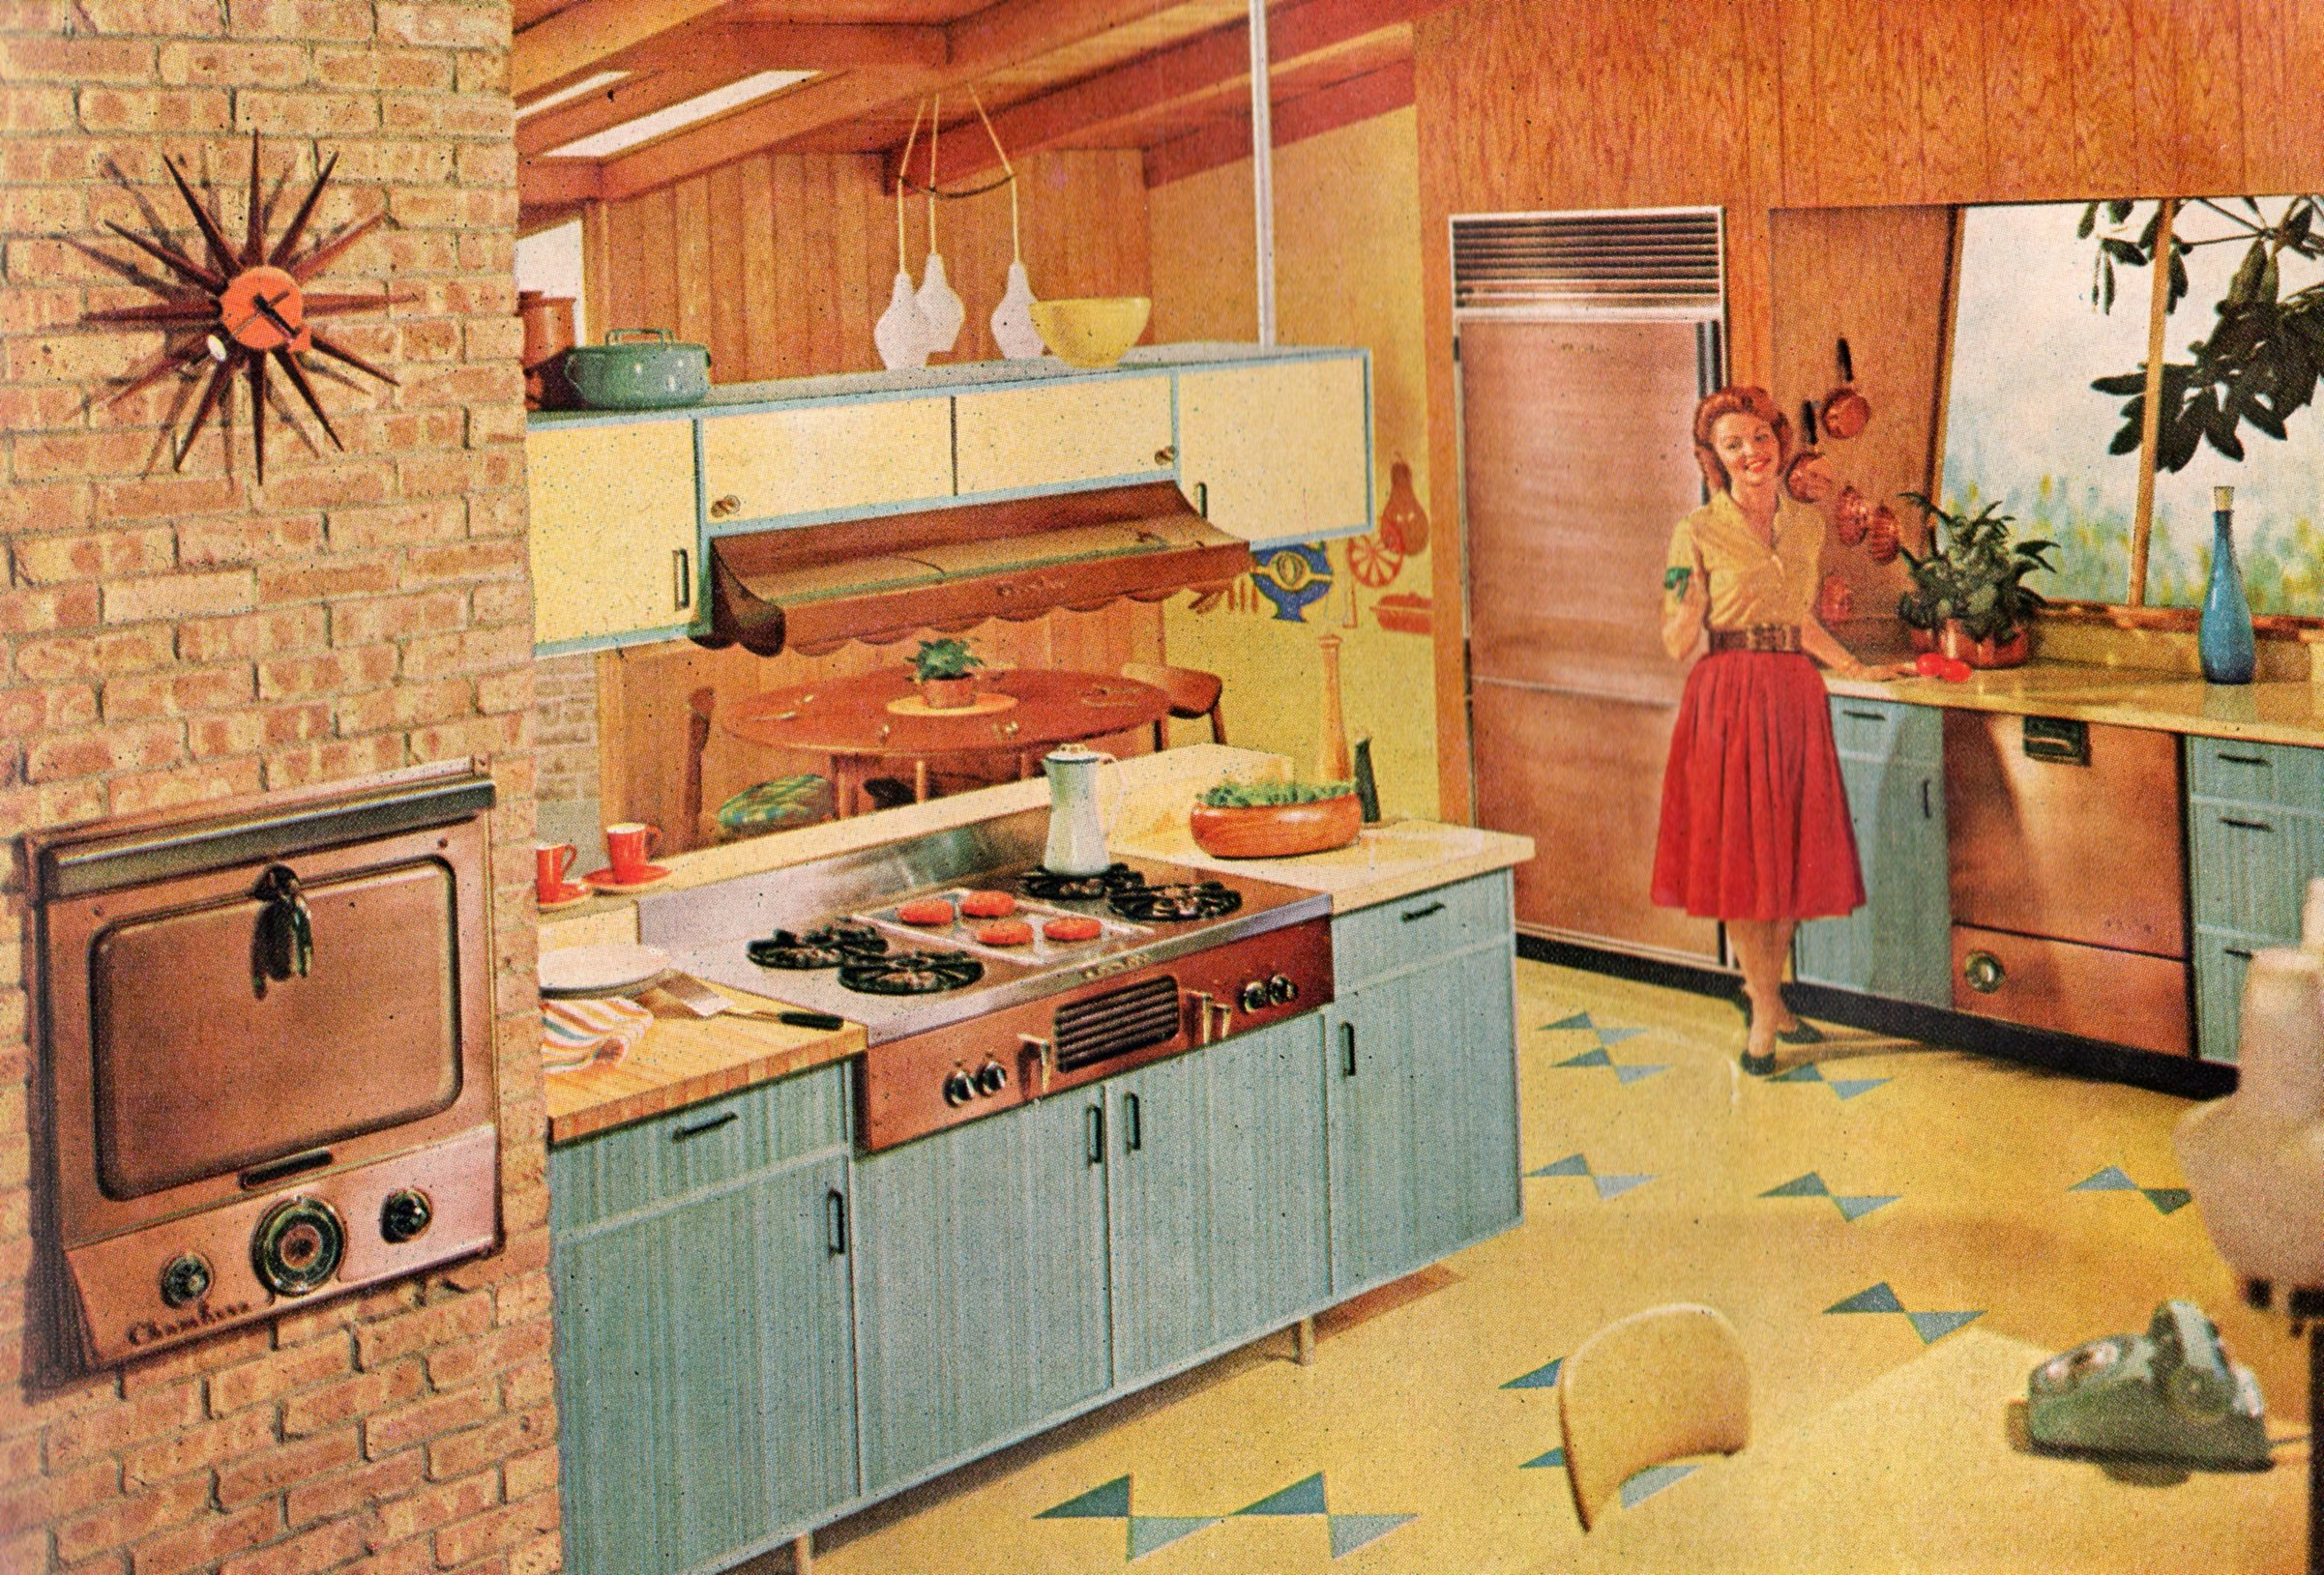 Retro Kitchen of the Future